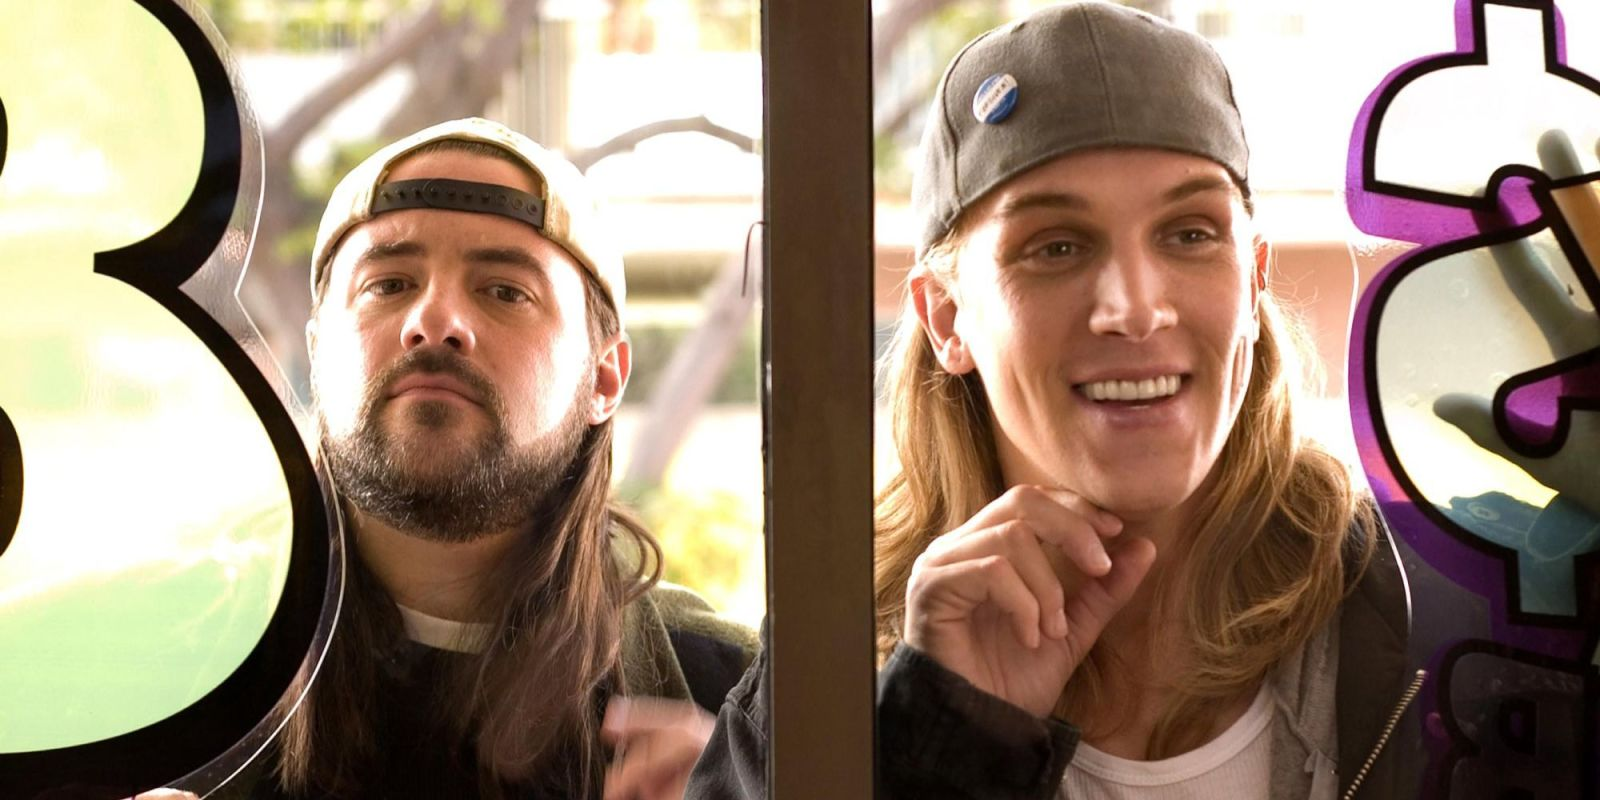 kevin smith is bringing back jay and silent bob for a